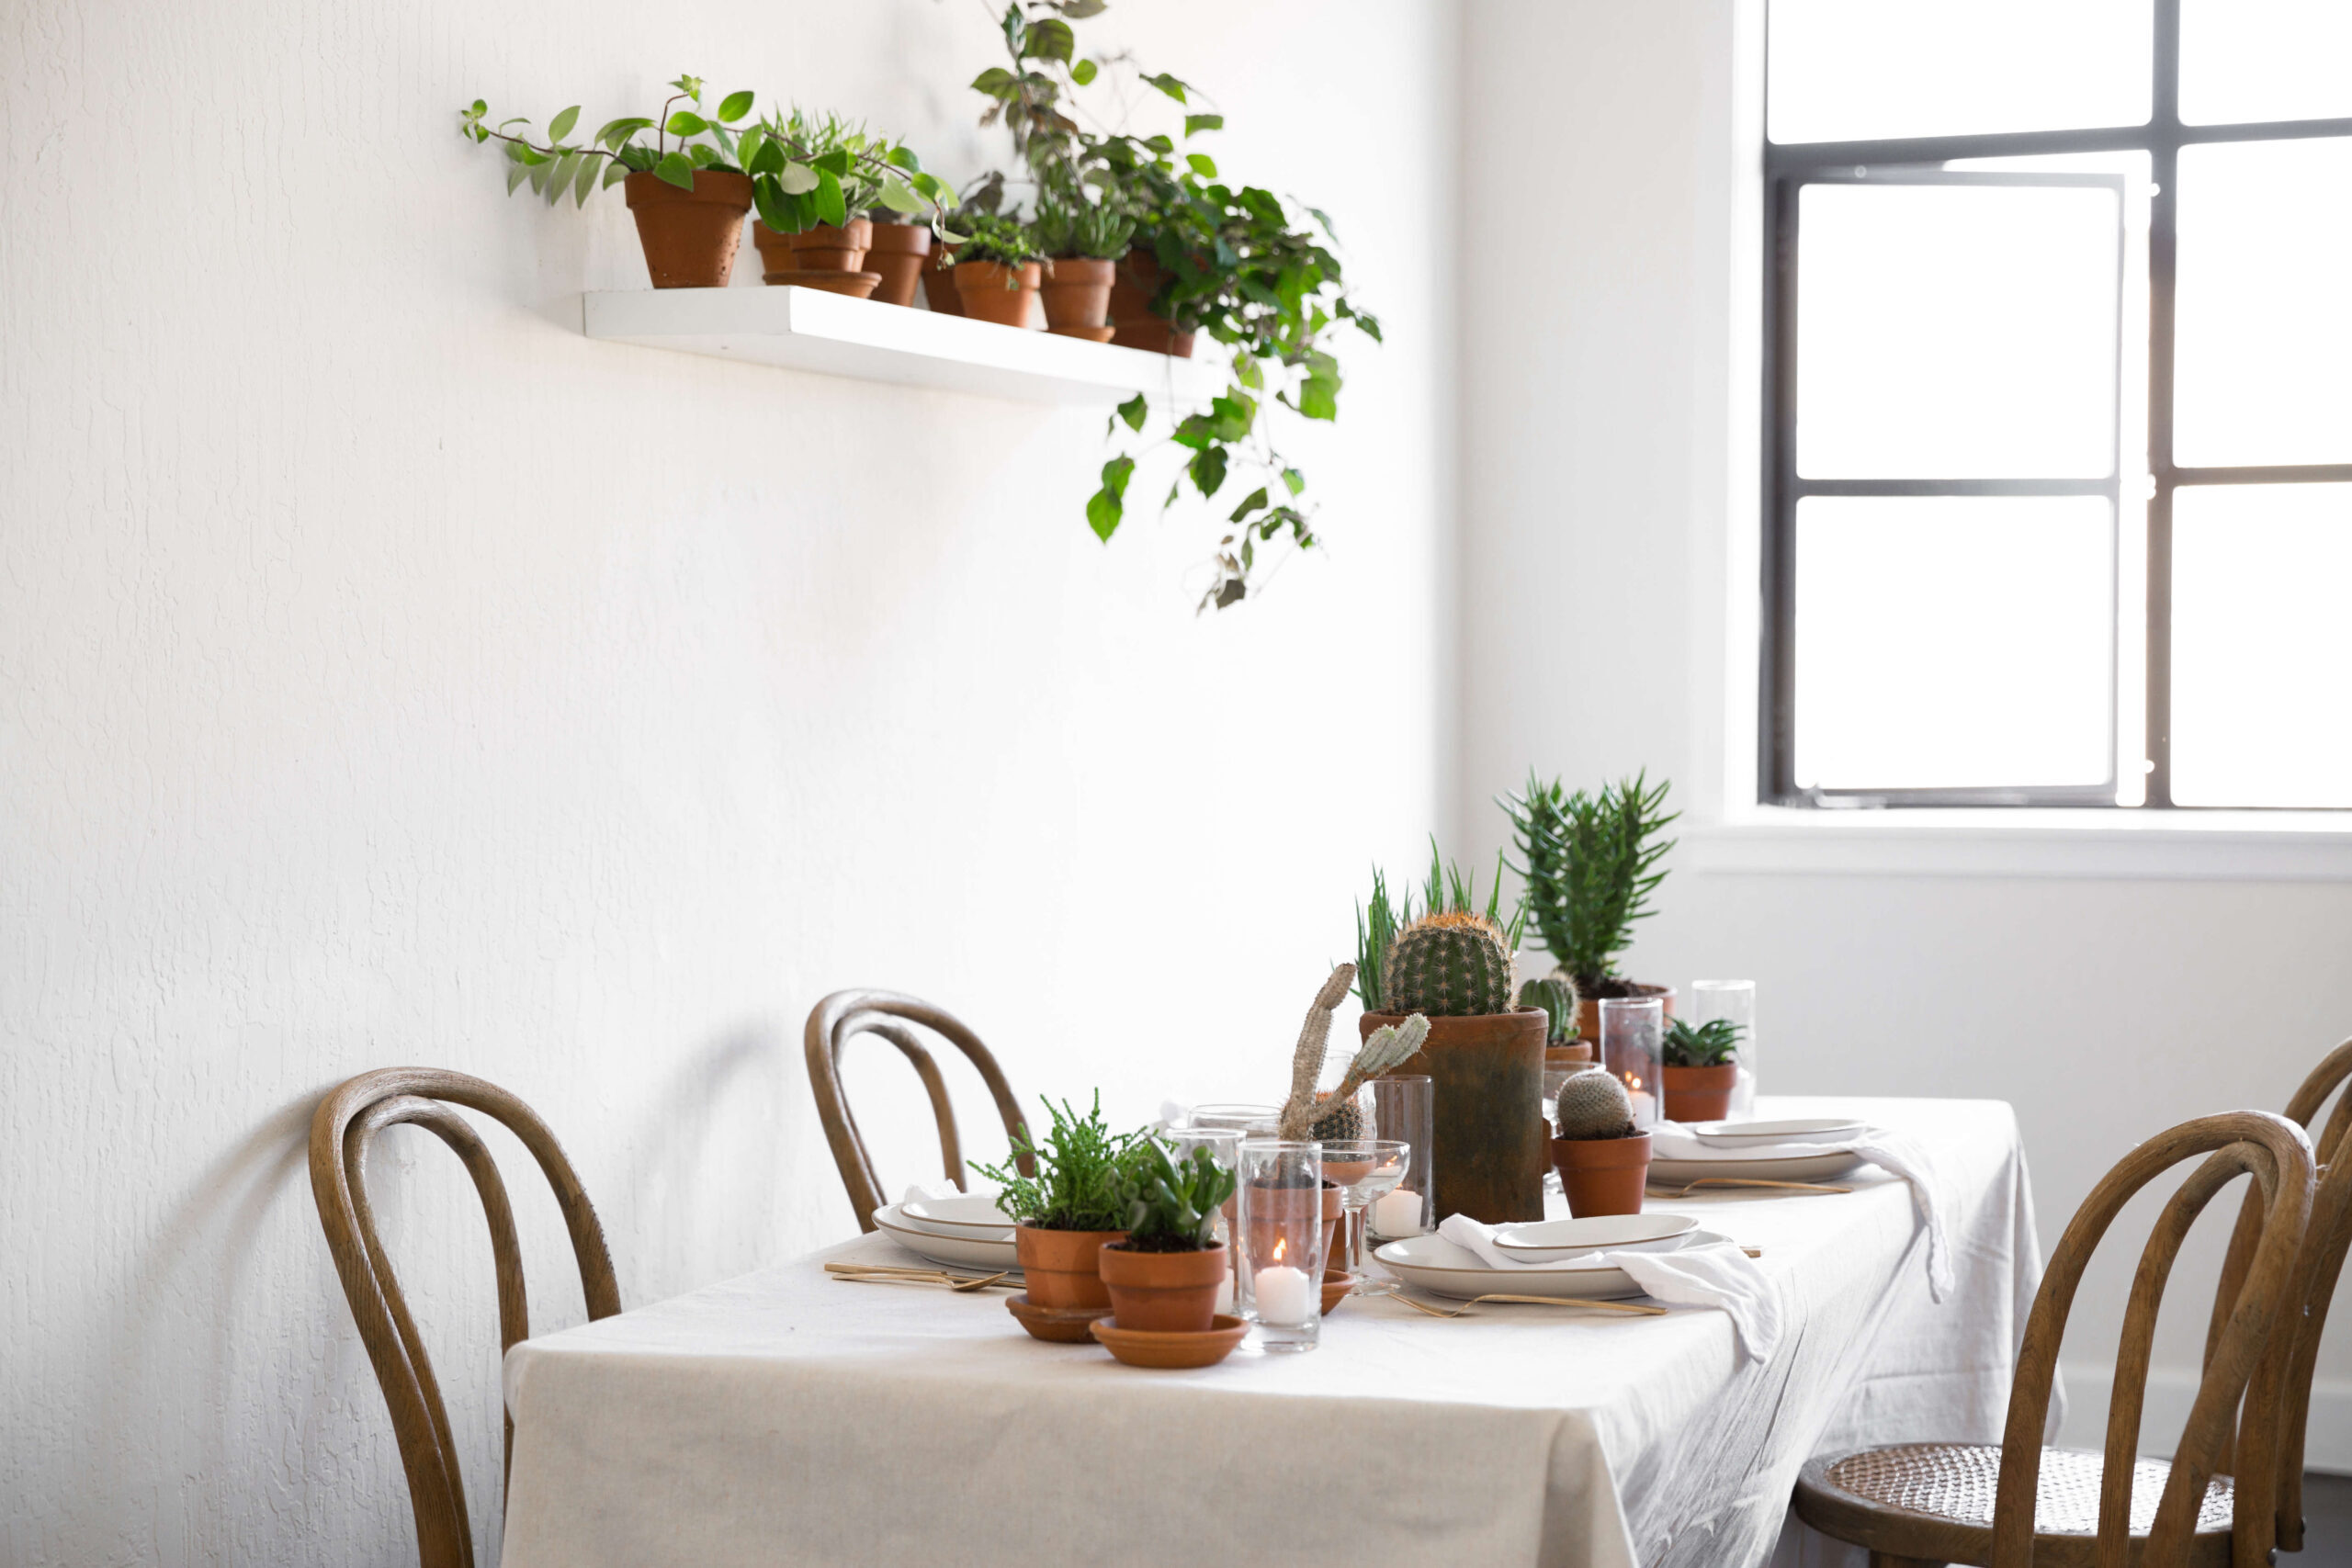 plantlibrary-80-houseplants-terra-cotta-dining-room-gardenista-2741433-scaled-3521029